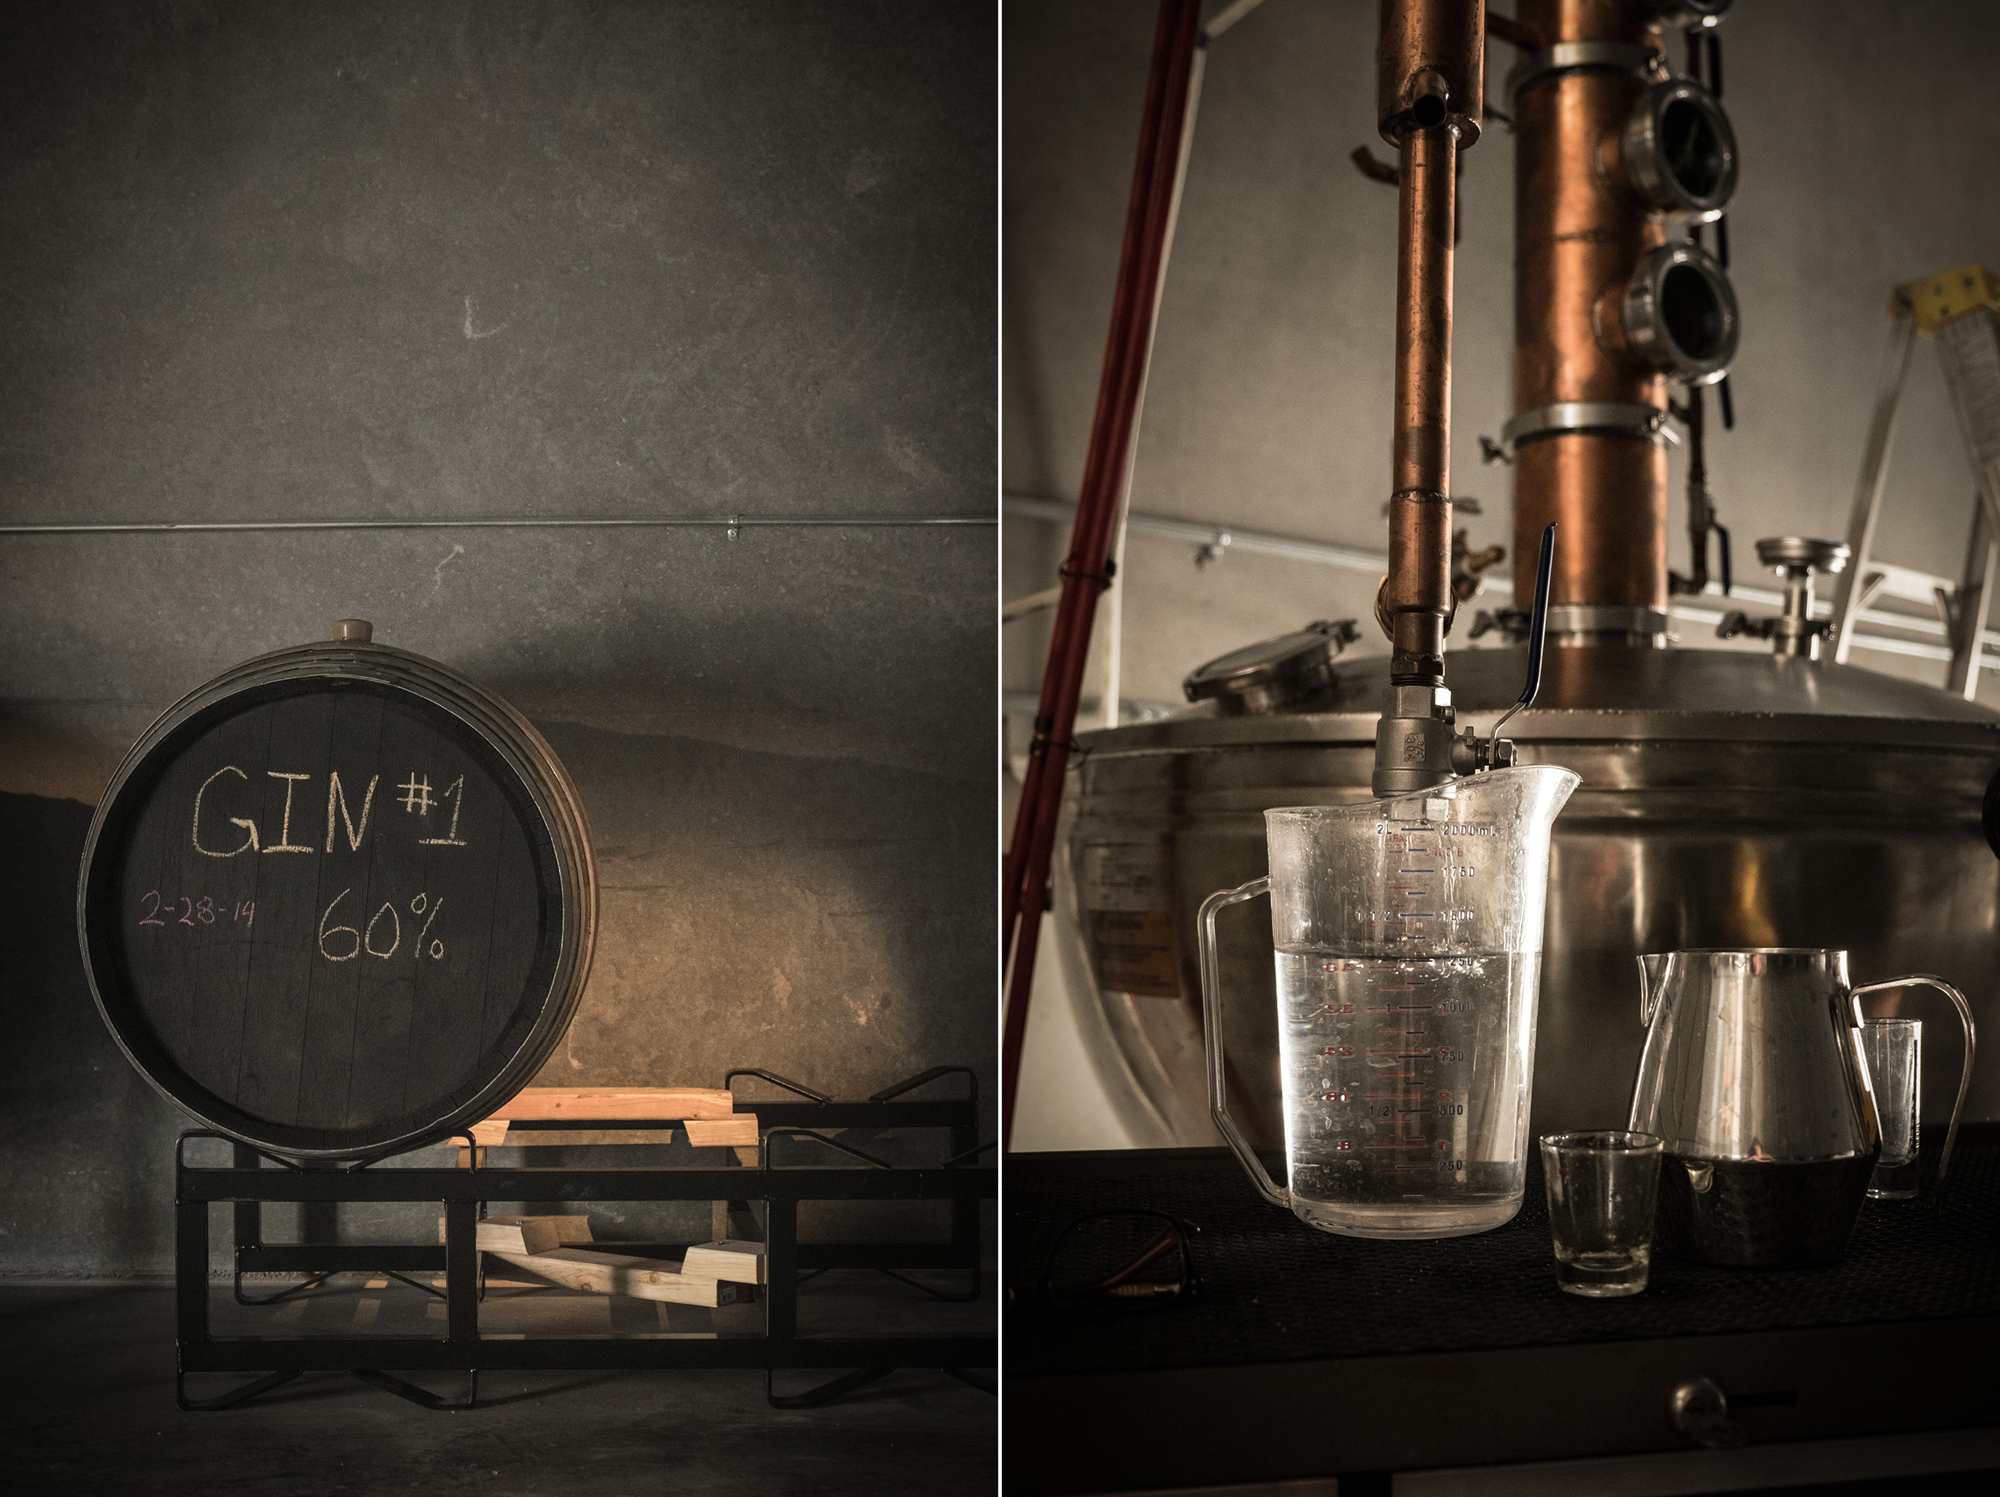 Beehive Distilling Small Batch Craft Gin Salt Lake City Utah 15